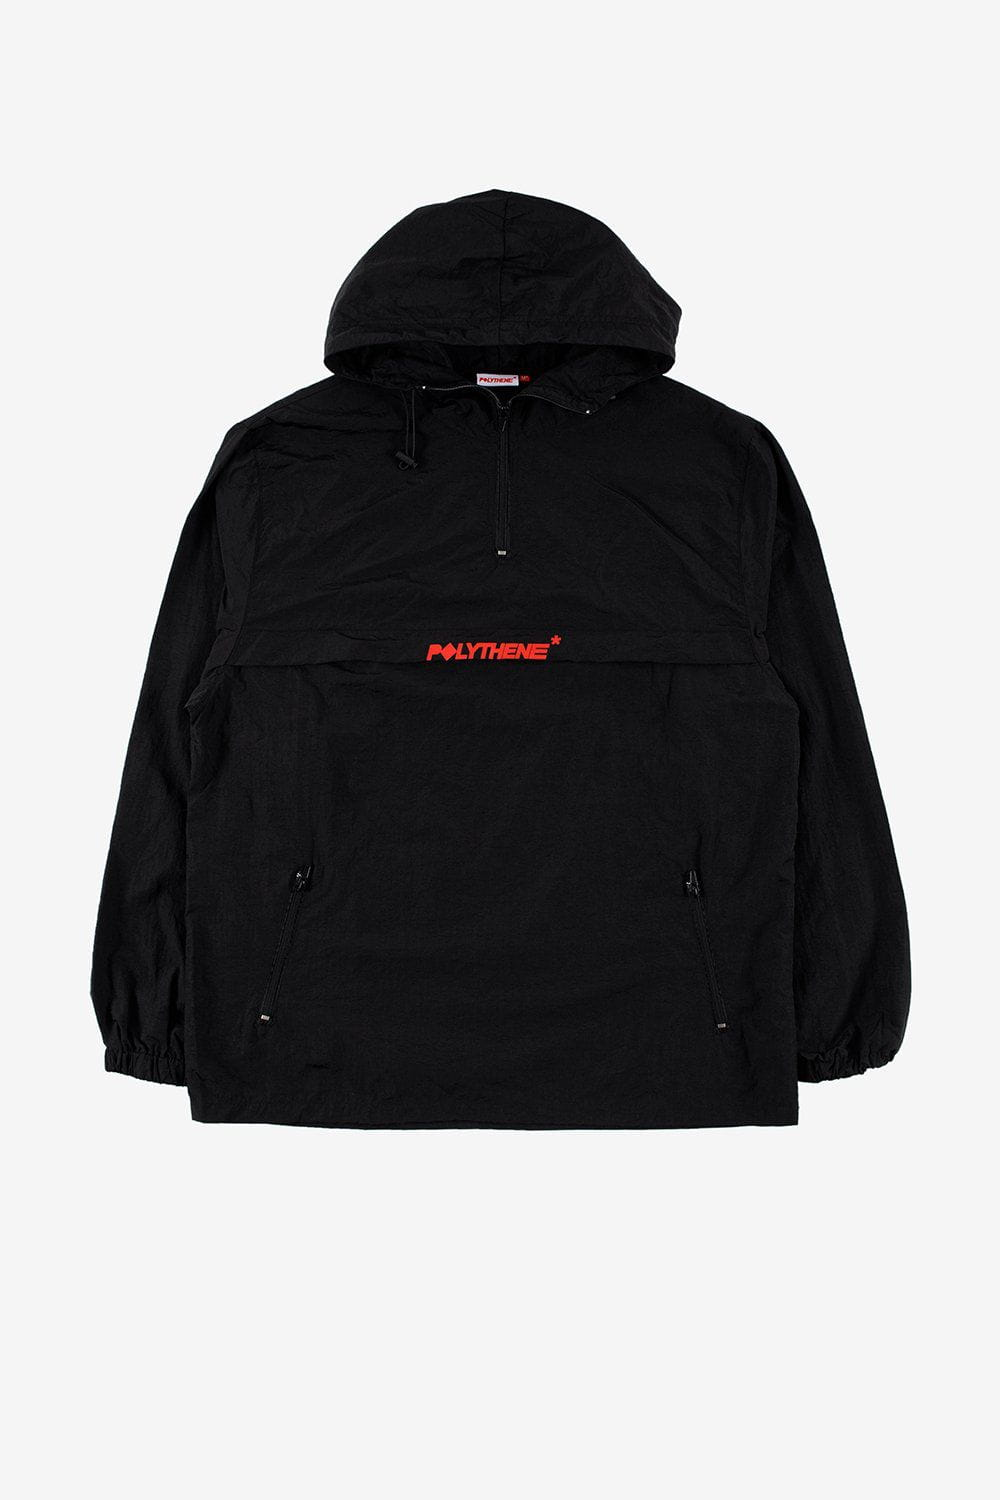 Polythene Optics Apparel Zipped Windbreaker Jacket Black